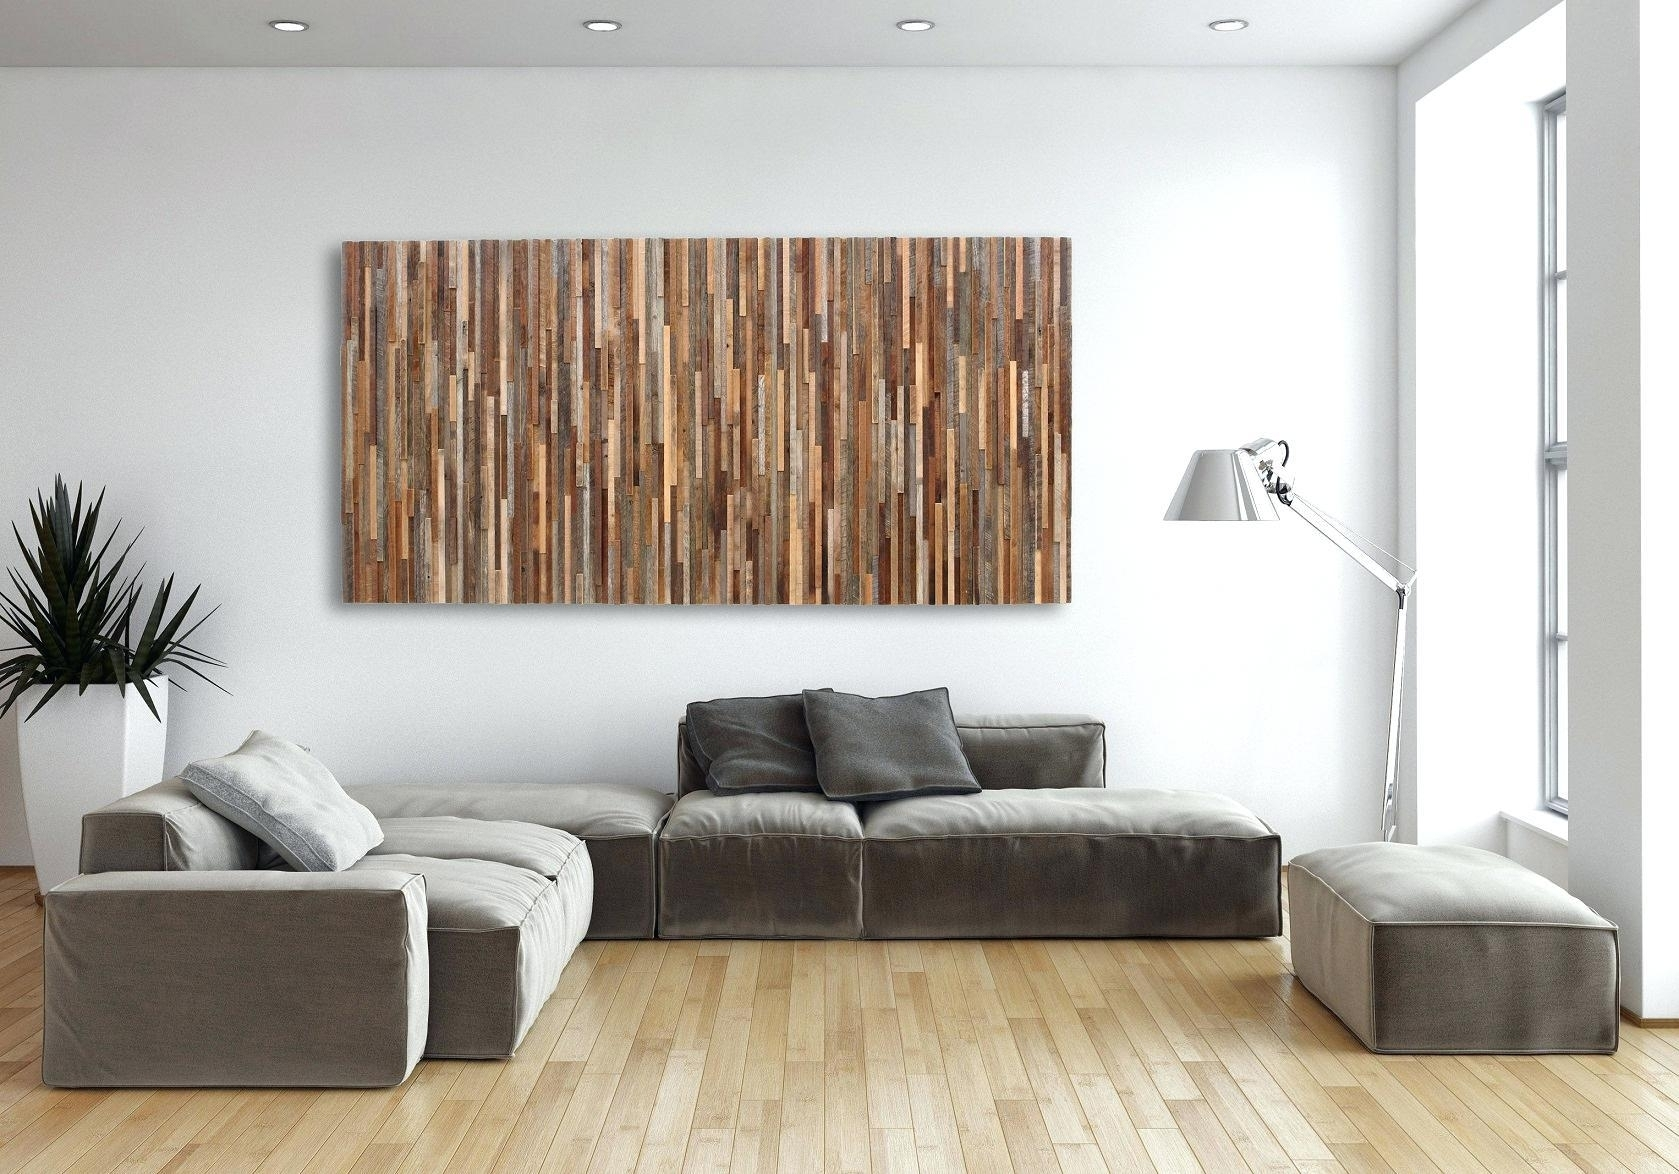 20 Collection Of Extra Large Framed Wall Art Wall Art Ideas with regard to Oversized Wall Art (Image 1 of 20)